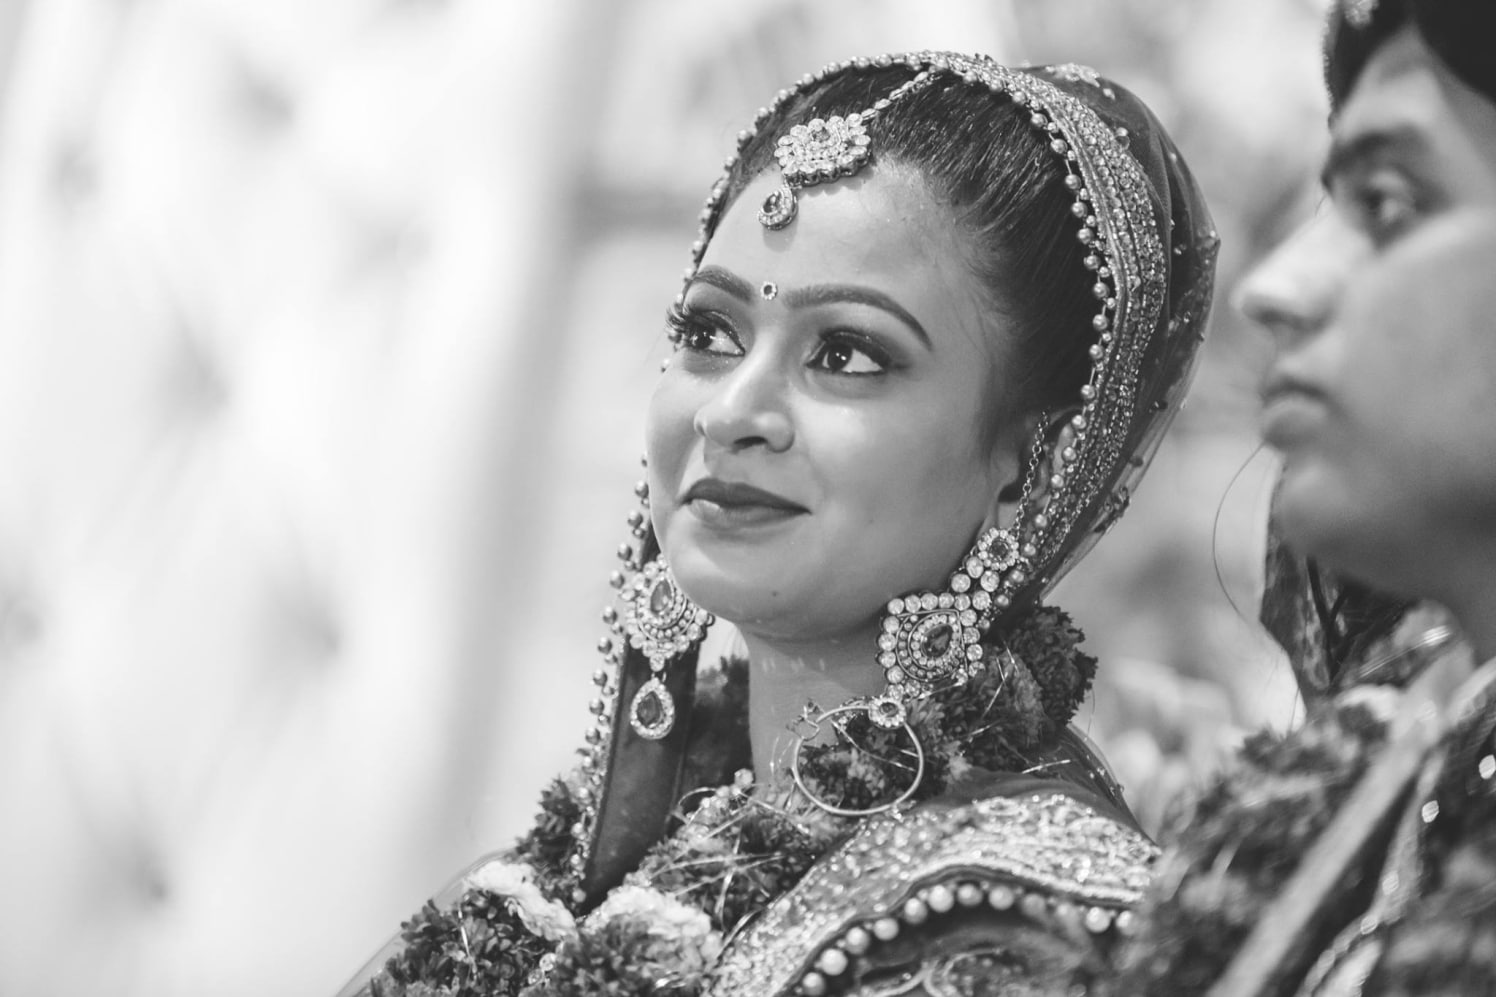 Candid Capture by Amish Photography Wedding-photography | Weddings Photos & Ideas